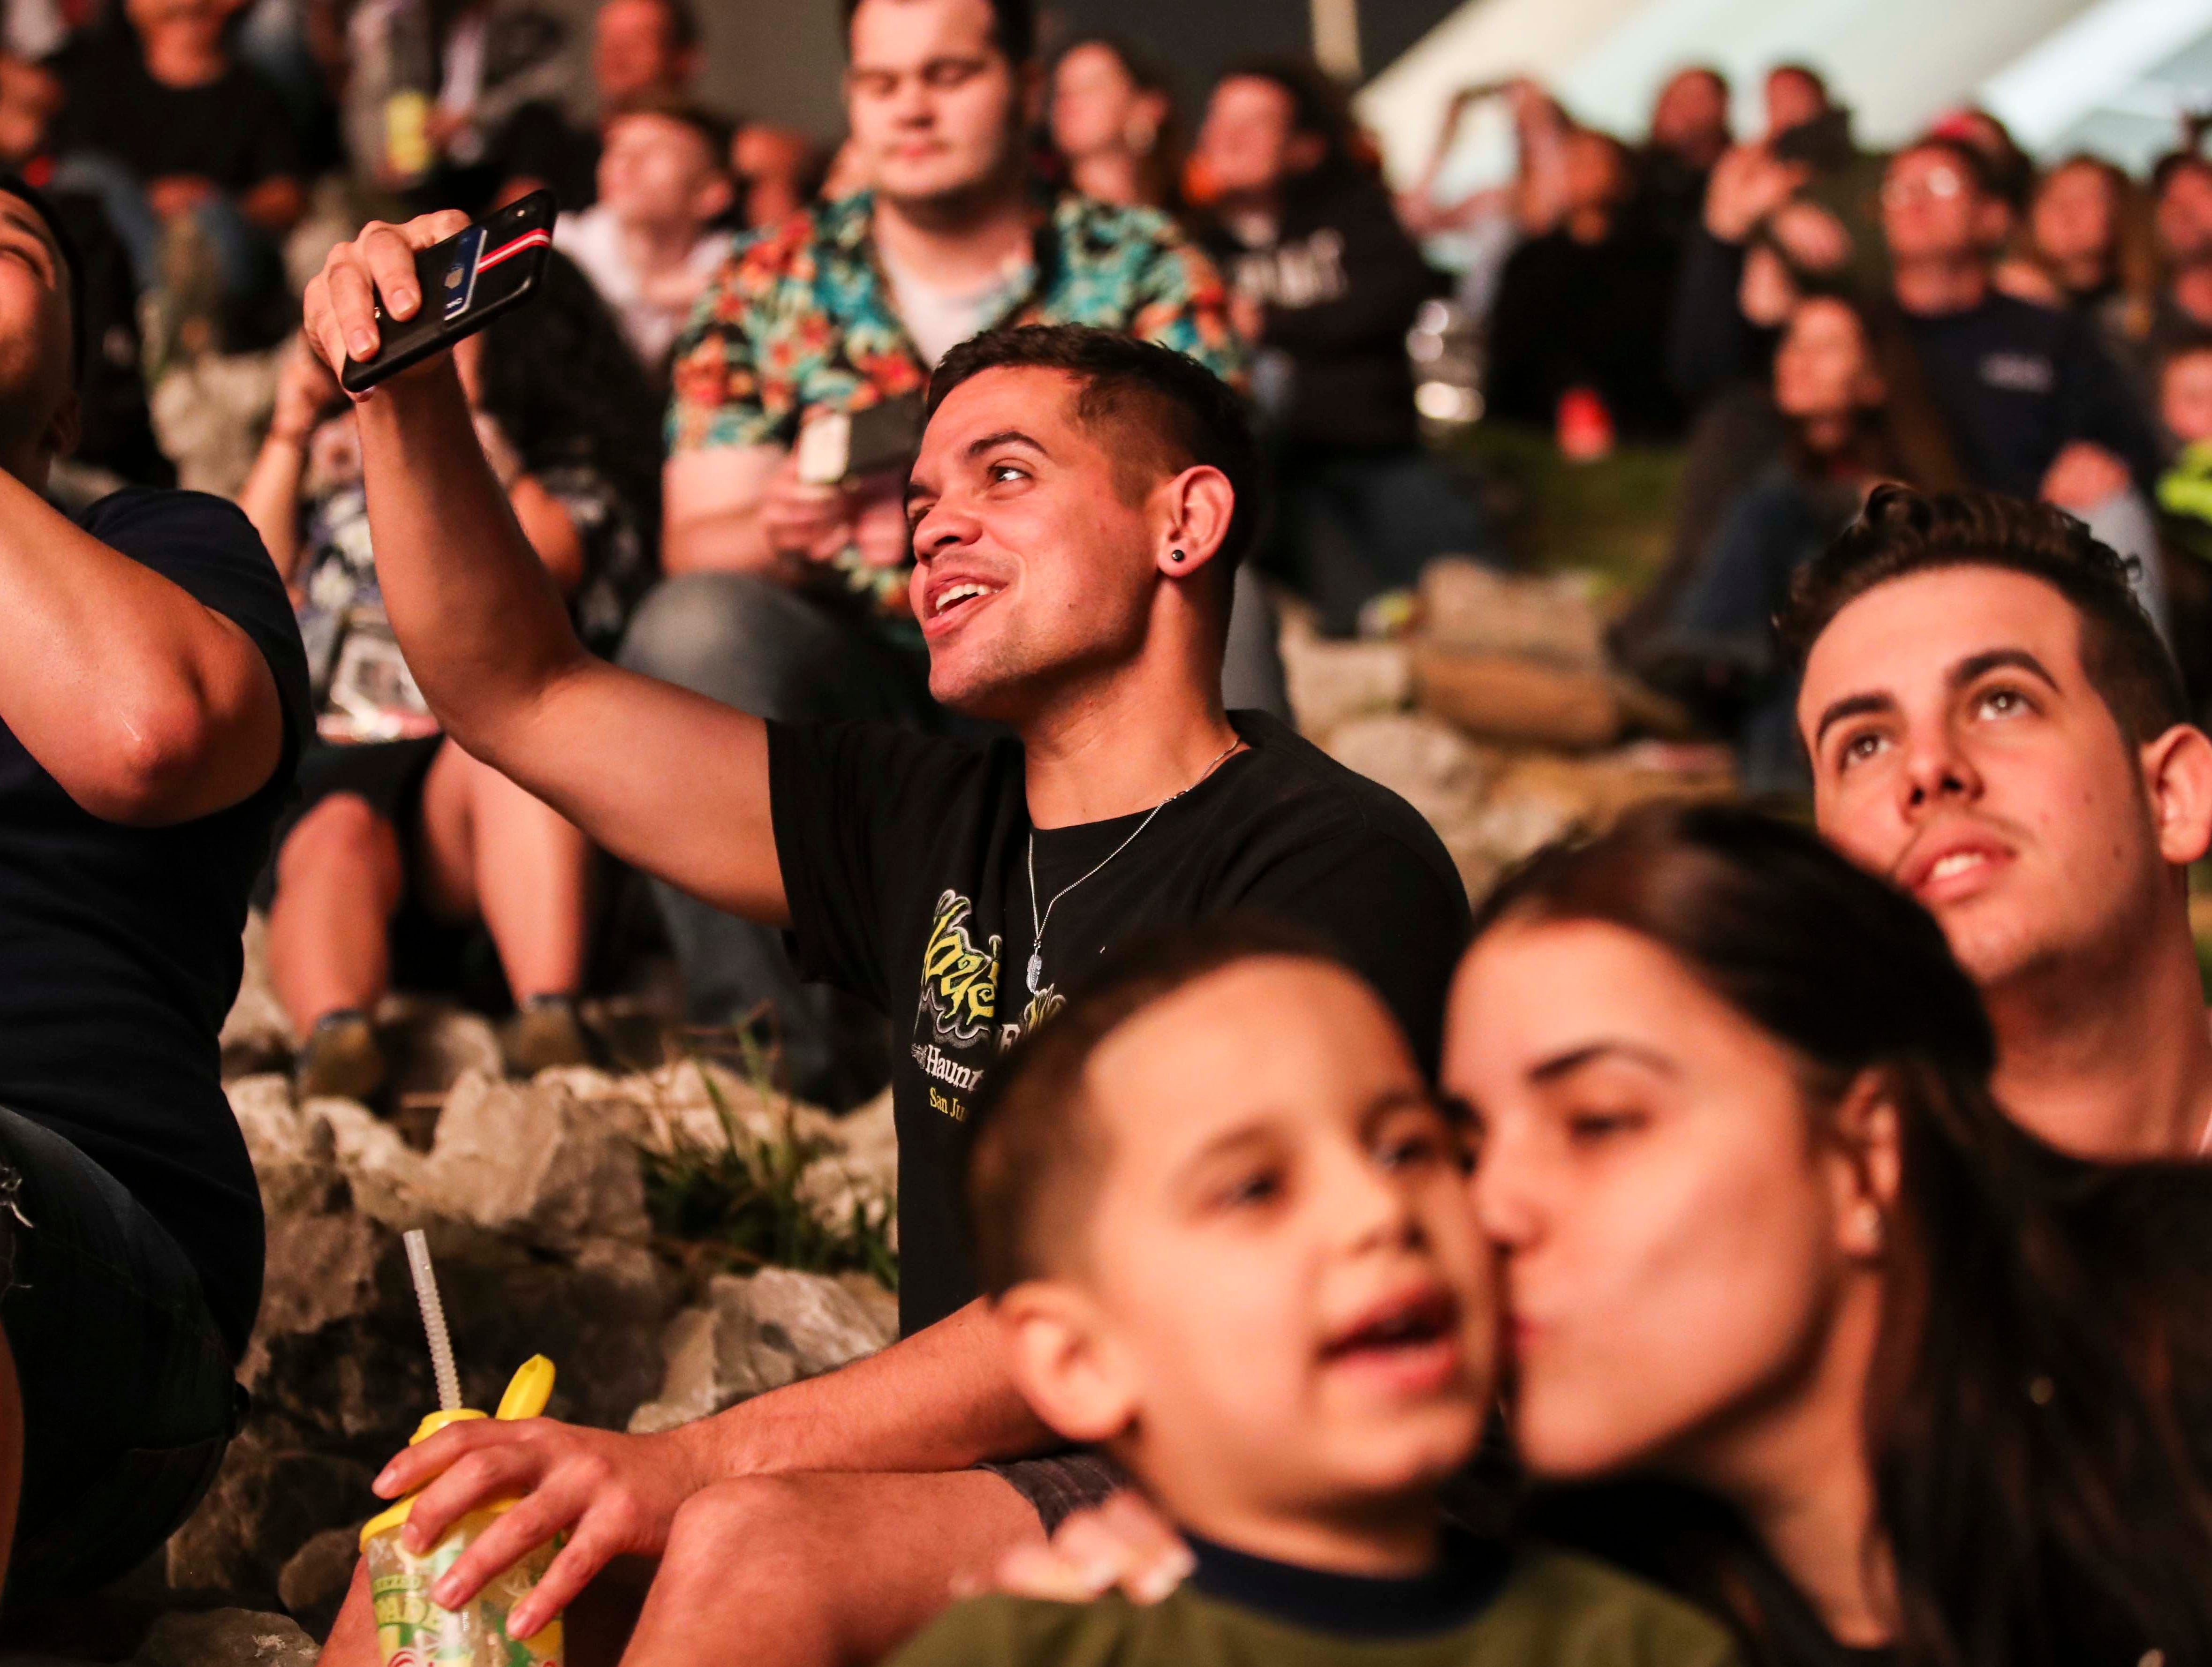 People crowded under Interstate 65 in Jeffersonville to watch the fireworks during 2019 Thunder Over Louisville.  April 13, 2019